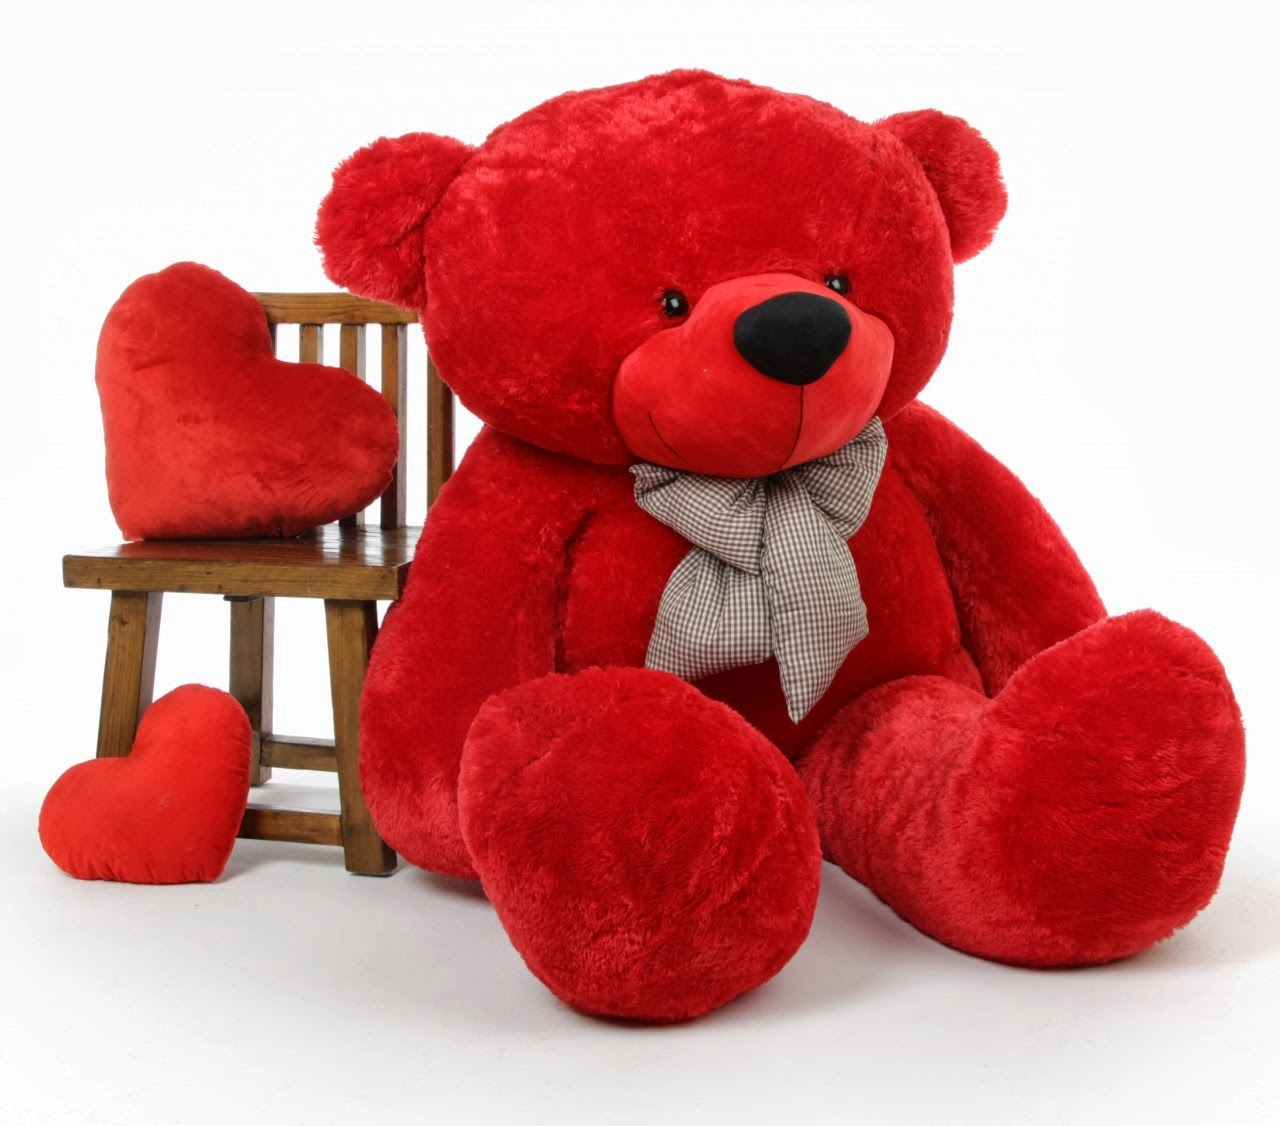 Thatu0027s Bitsy Cuddles From Giant Teddy U0026 Iu0027ll Admit, Her Red Teddy Bear Fur  Makes Her Pretty For Valentineu0027s Day... But Green Is Great Too!  Willy Shags